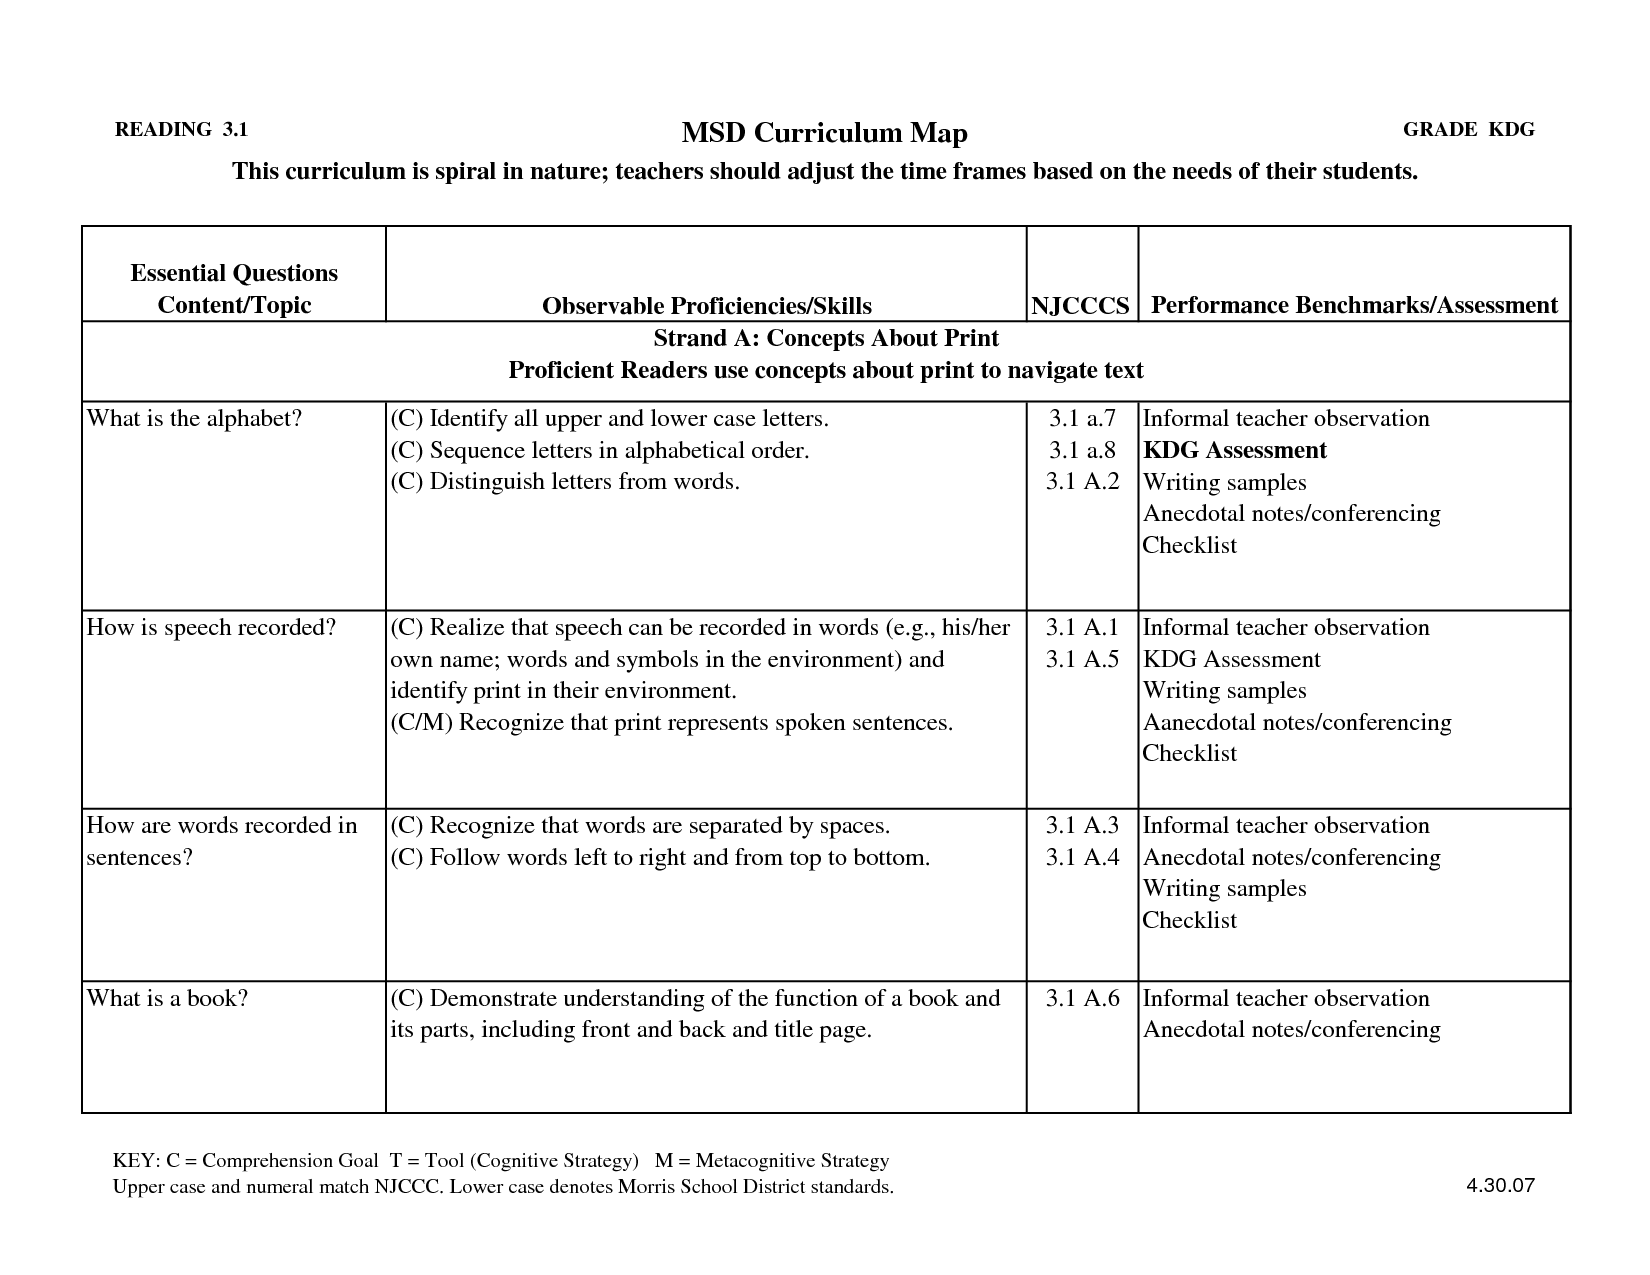 Informal Teacher Observation Checklist